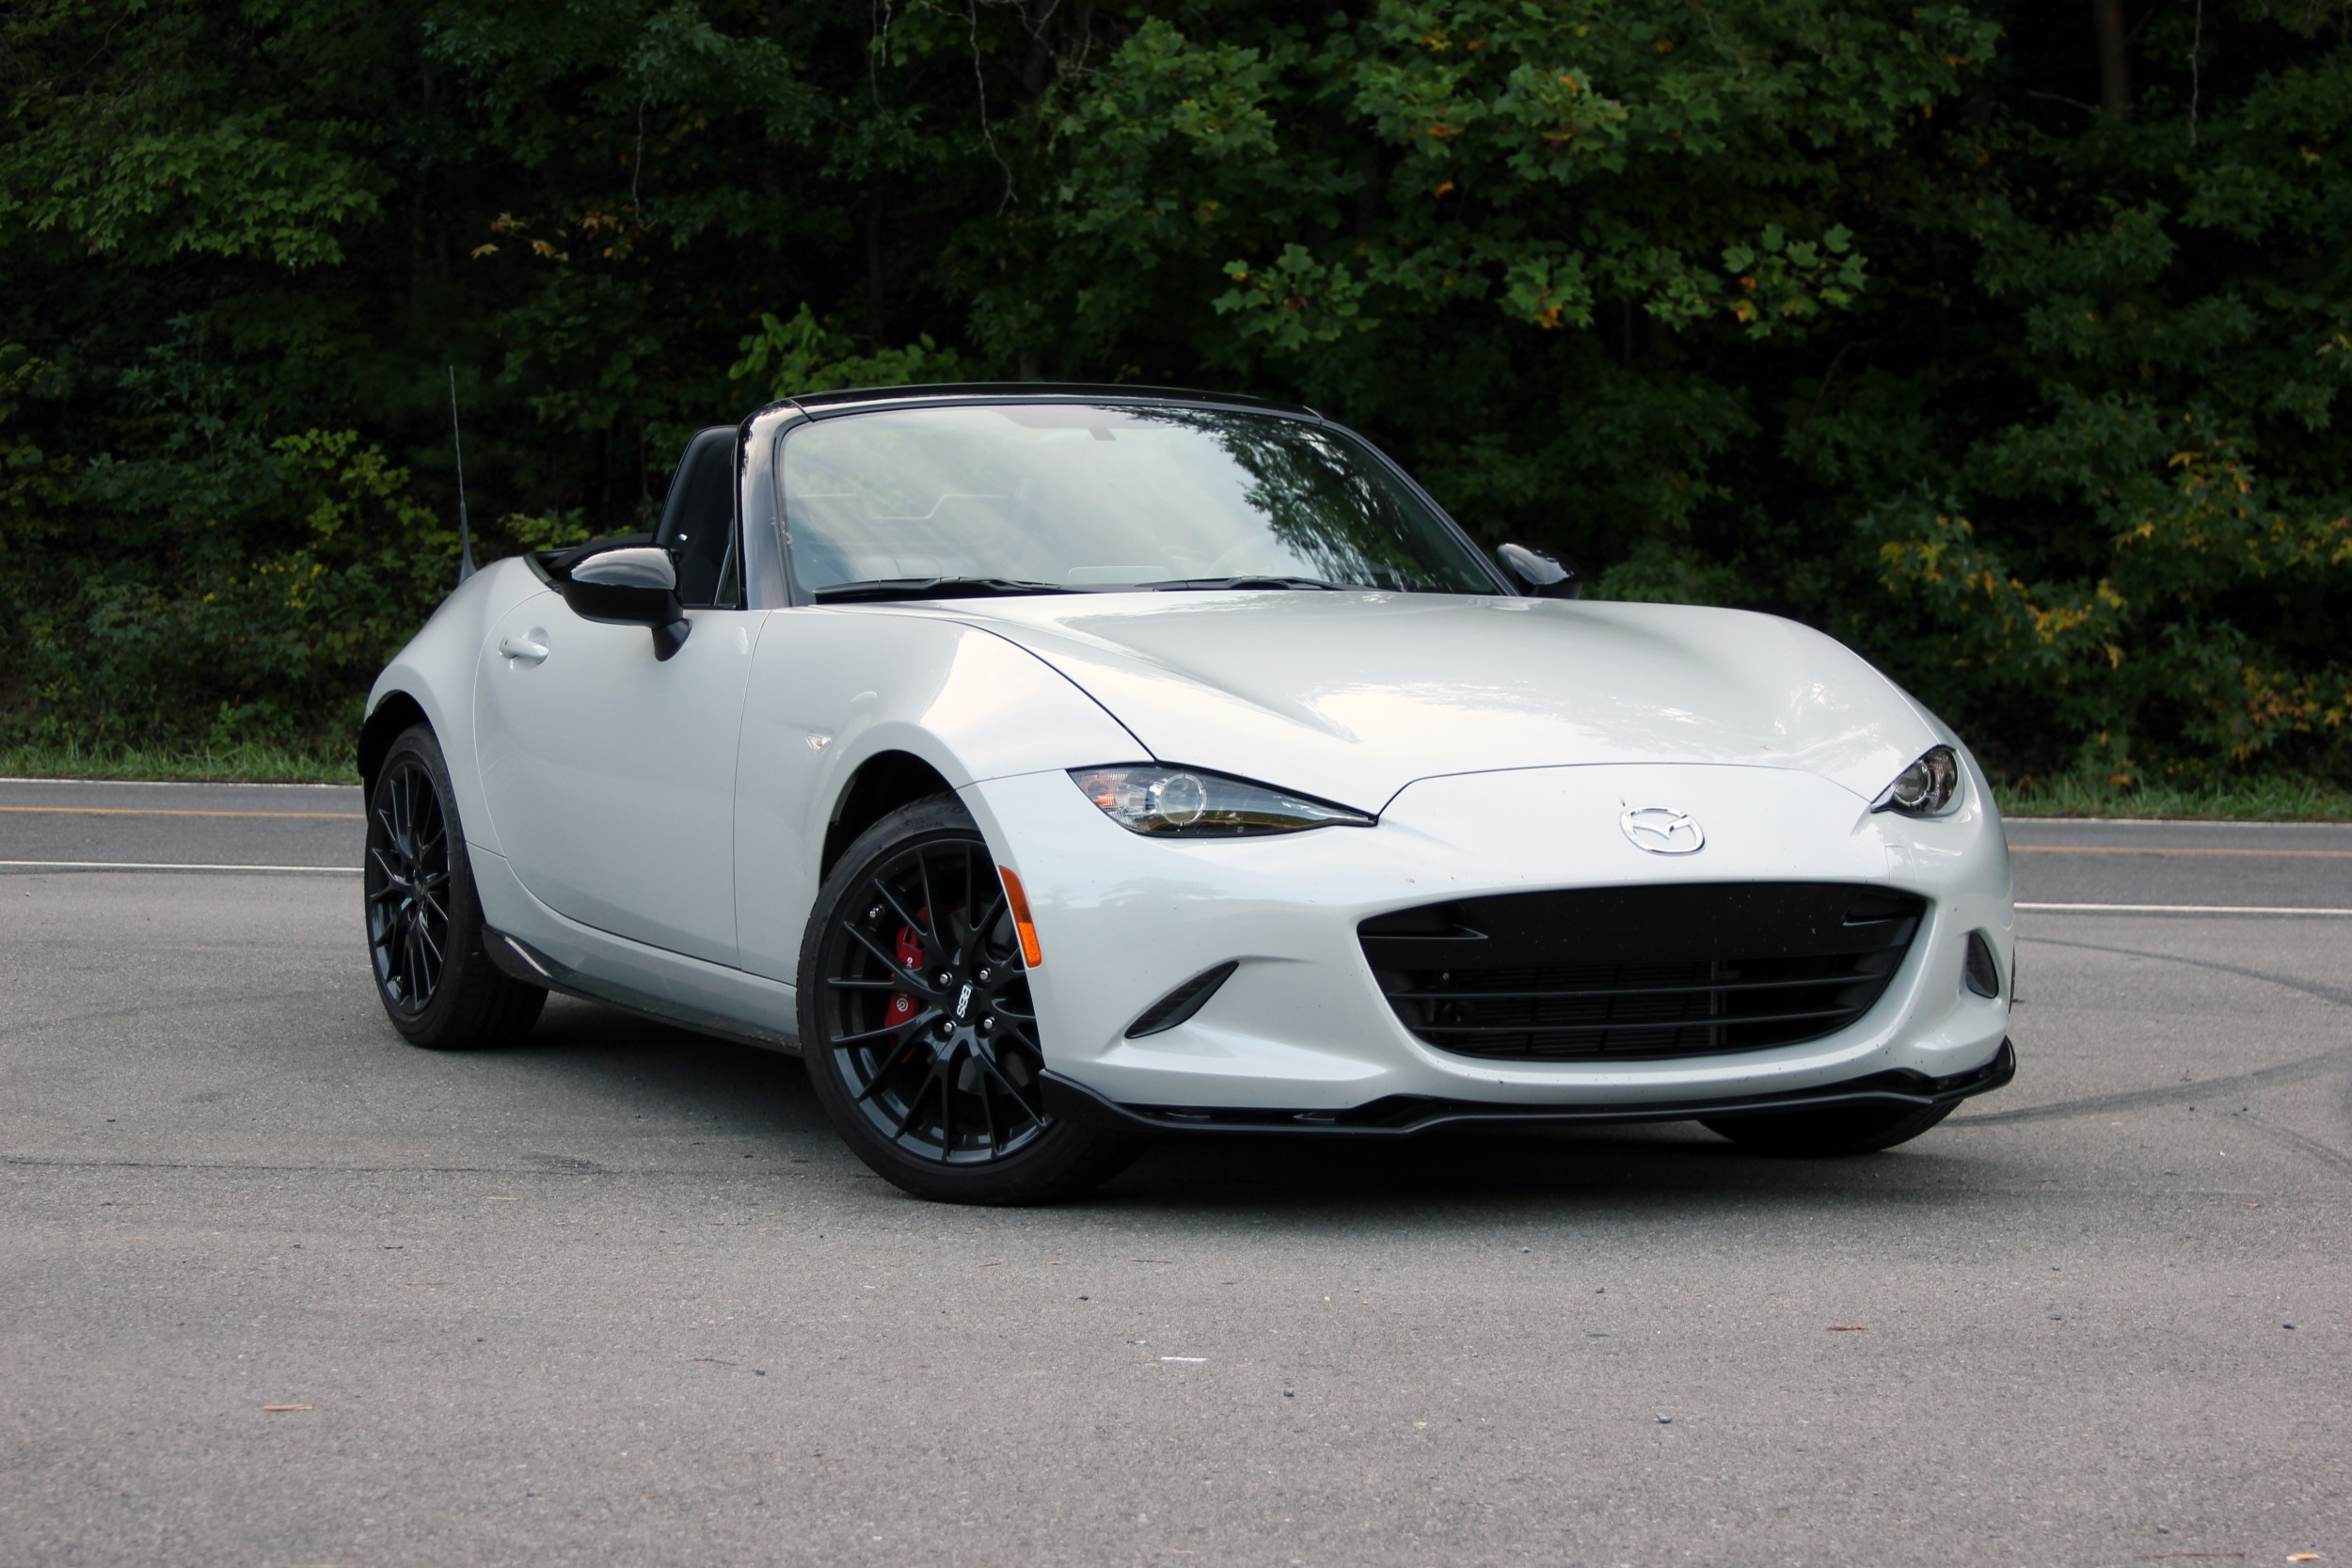 2016 mazda mx 5 miata review autotalk. Black Bedroom Furniture Sets. Home Design Ideas